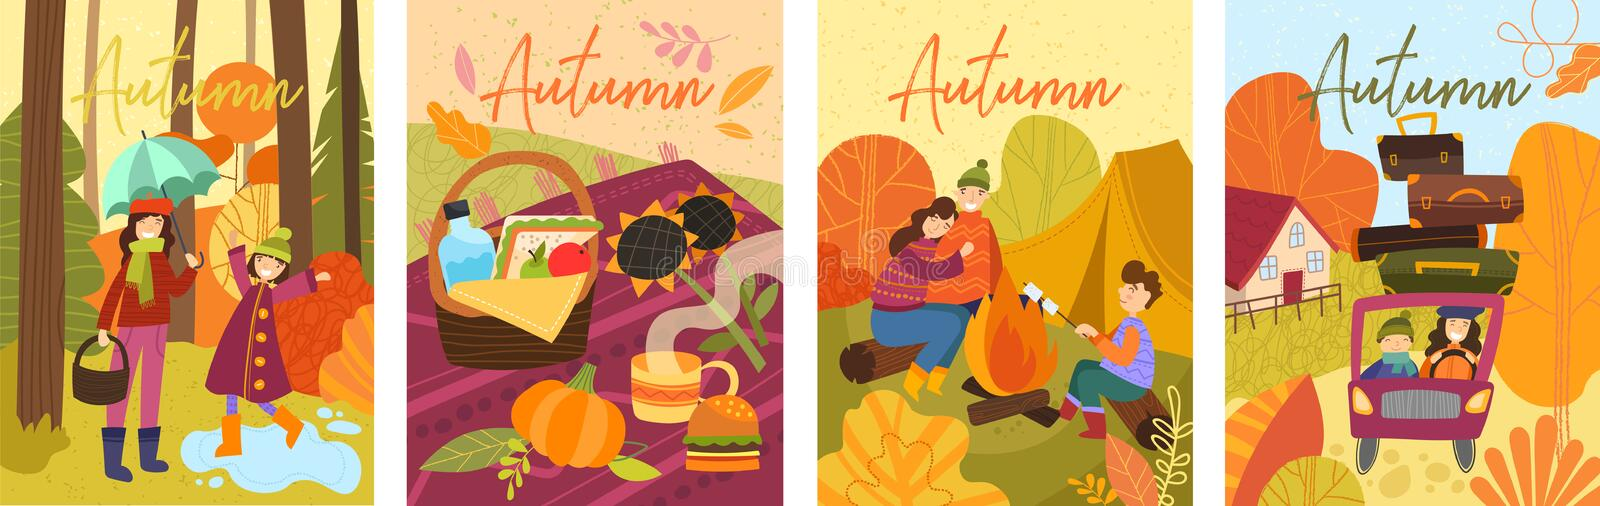 Set of four colorful depictions of autumn life with happy people spending time outdoors. vector illustration